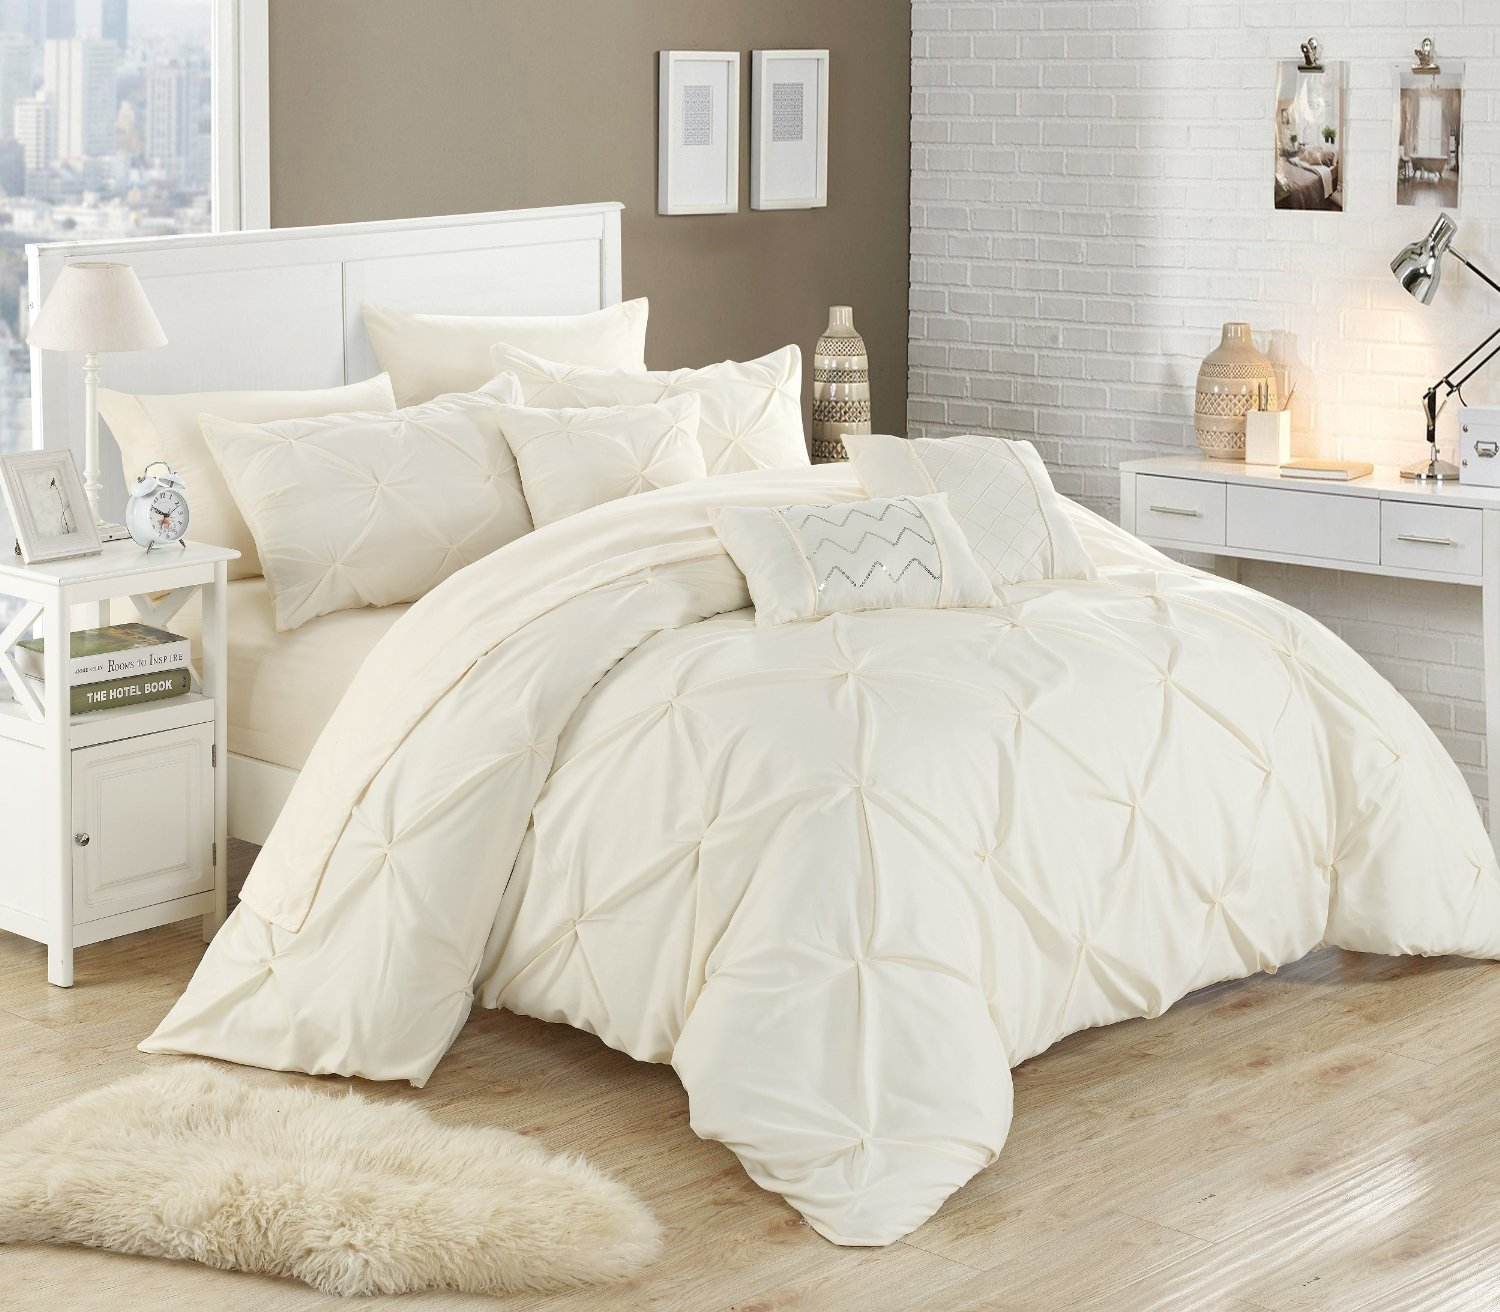 How to Decorate Your Bedroom - LuxComfyBedding